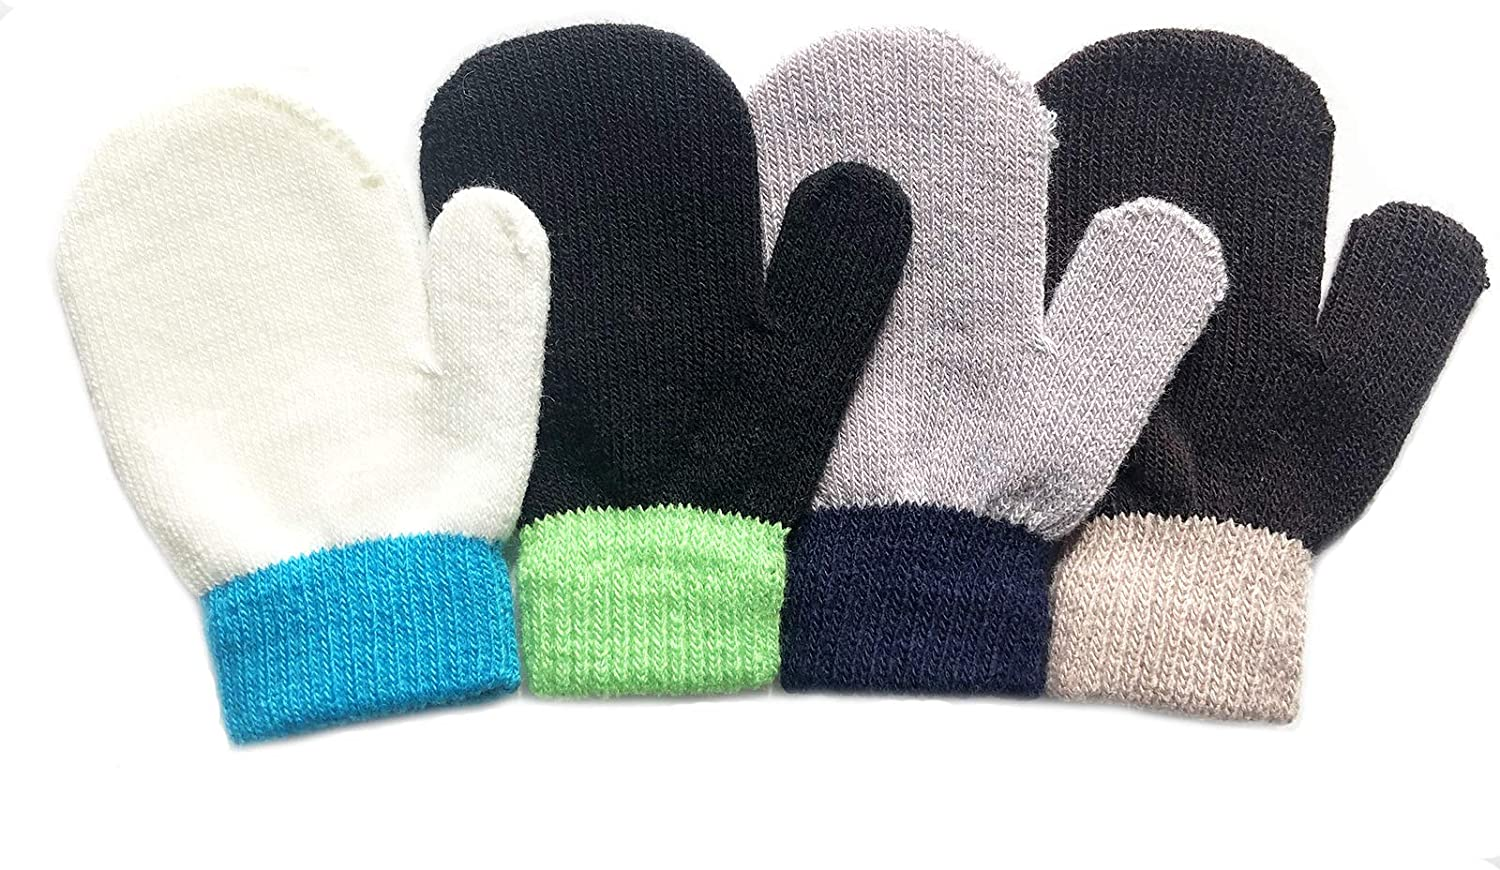 LAKYTION 4 Pairs Toddler Magic Stretch Mittens Full Finger Mittens Knitted Gloves Winter Warm Kids Knit Gloves for Little Girls Boys 4 colors